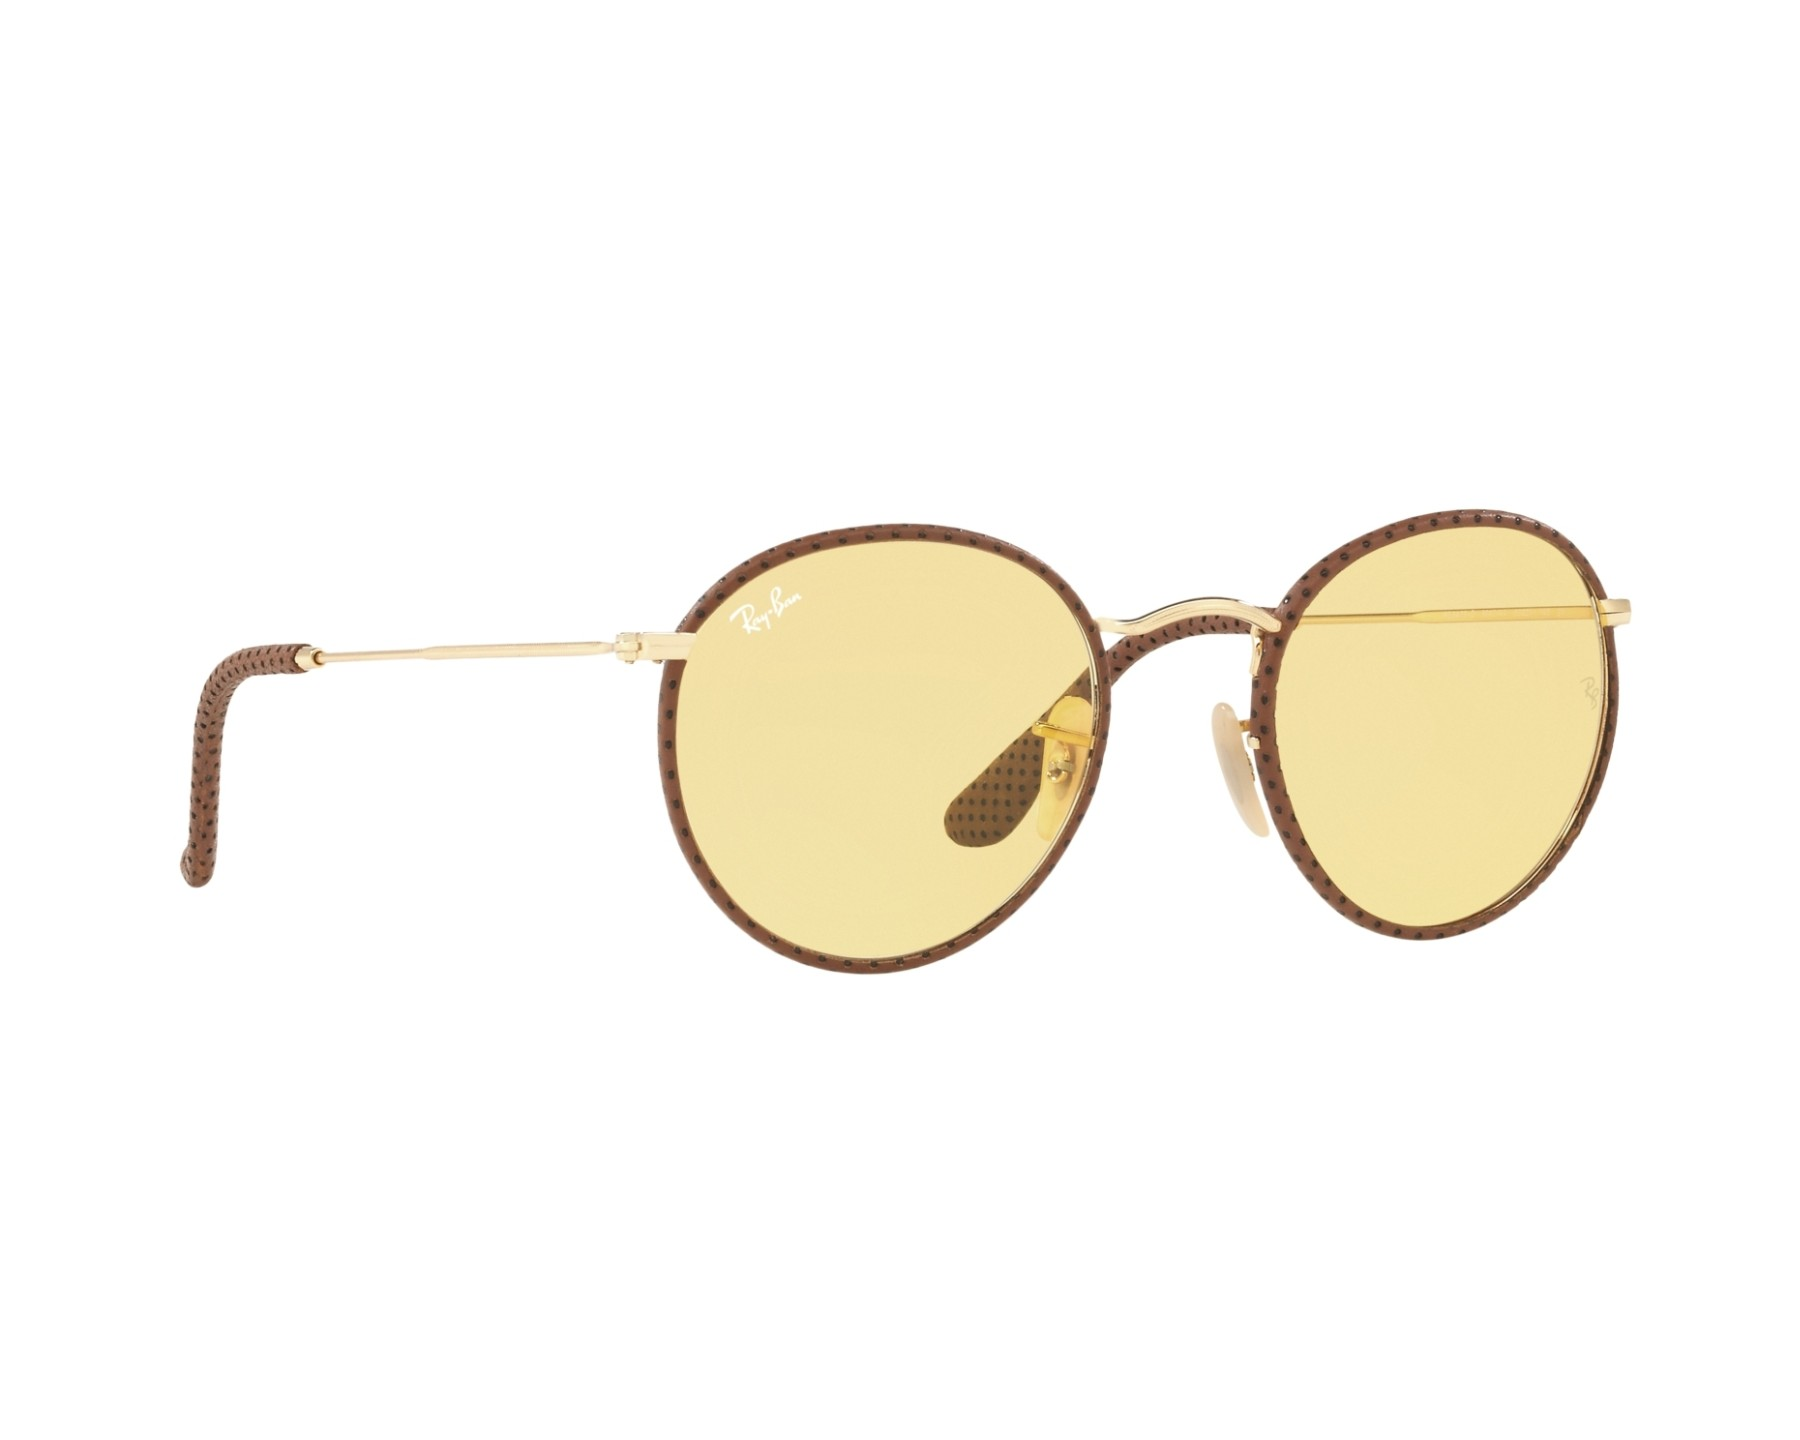 e87ed0521c netherlands ray ban round craft rb3475q 9040 withsunglasses 88dfd 880f5   closeout sunglasses ray ban rb 3475 q 90424a 50 21 gold copper brown b91eb  035a0